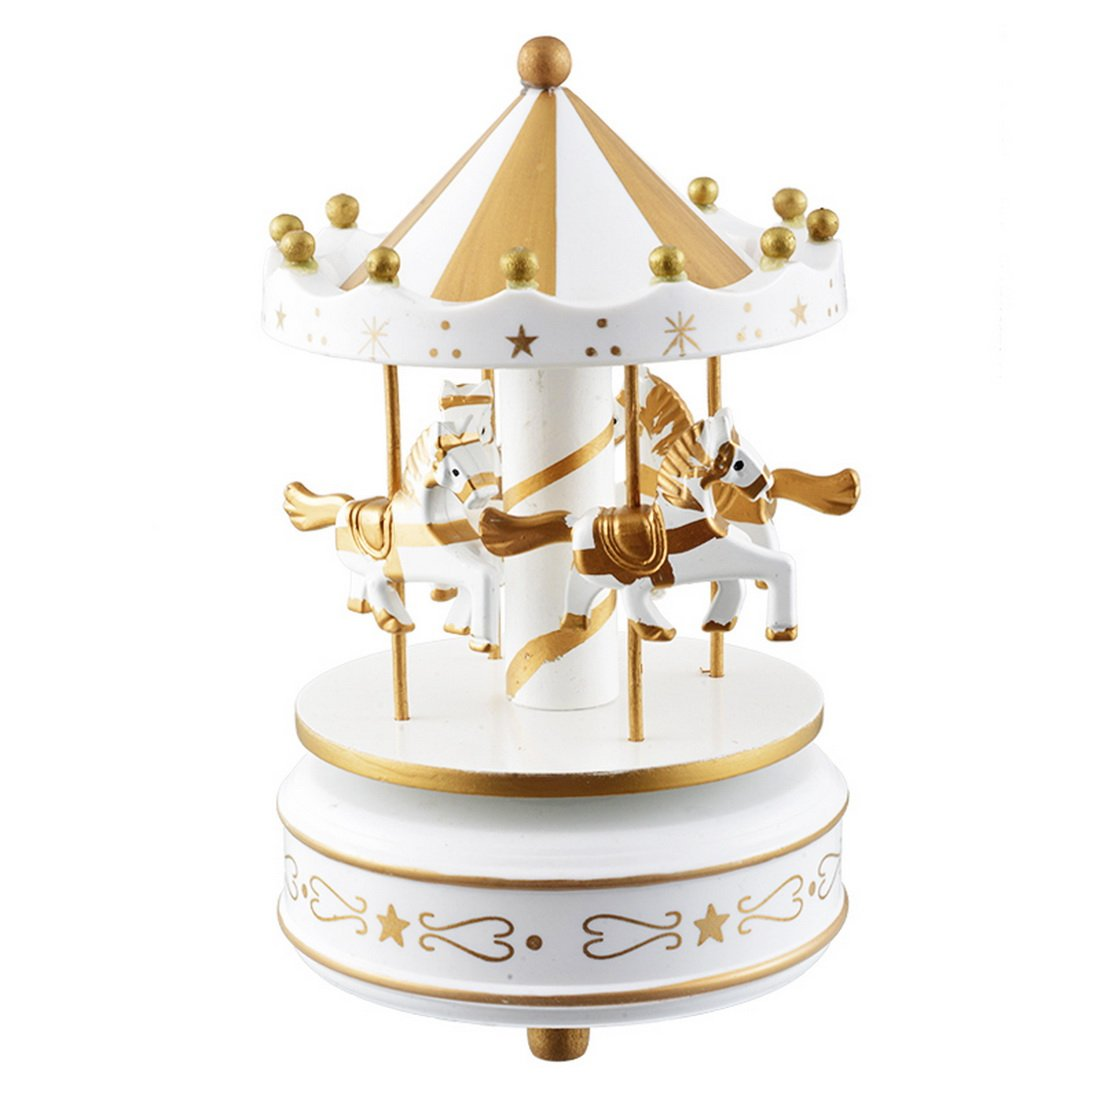 Hoomall Wooden Merry Go Round Horse Carousel Music Box for Gift, White Gold